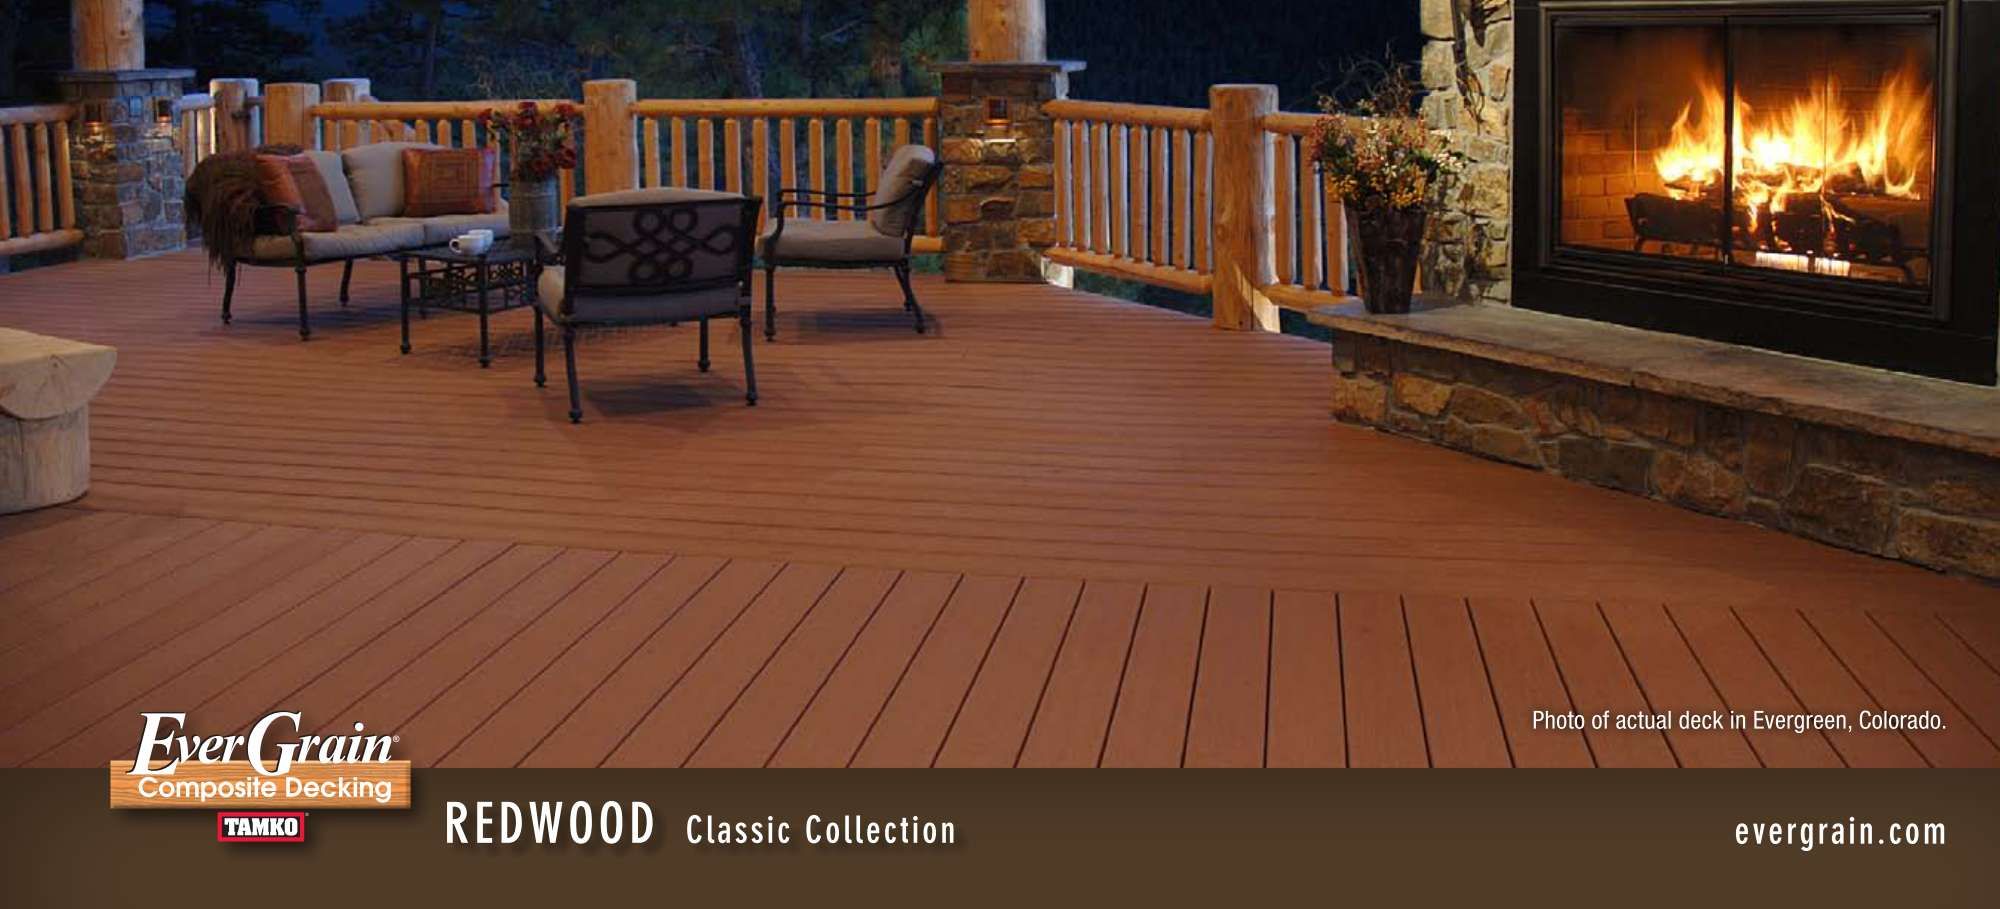 peru evergrain decking matched with mocca railing plus sofa set ideas